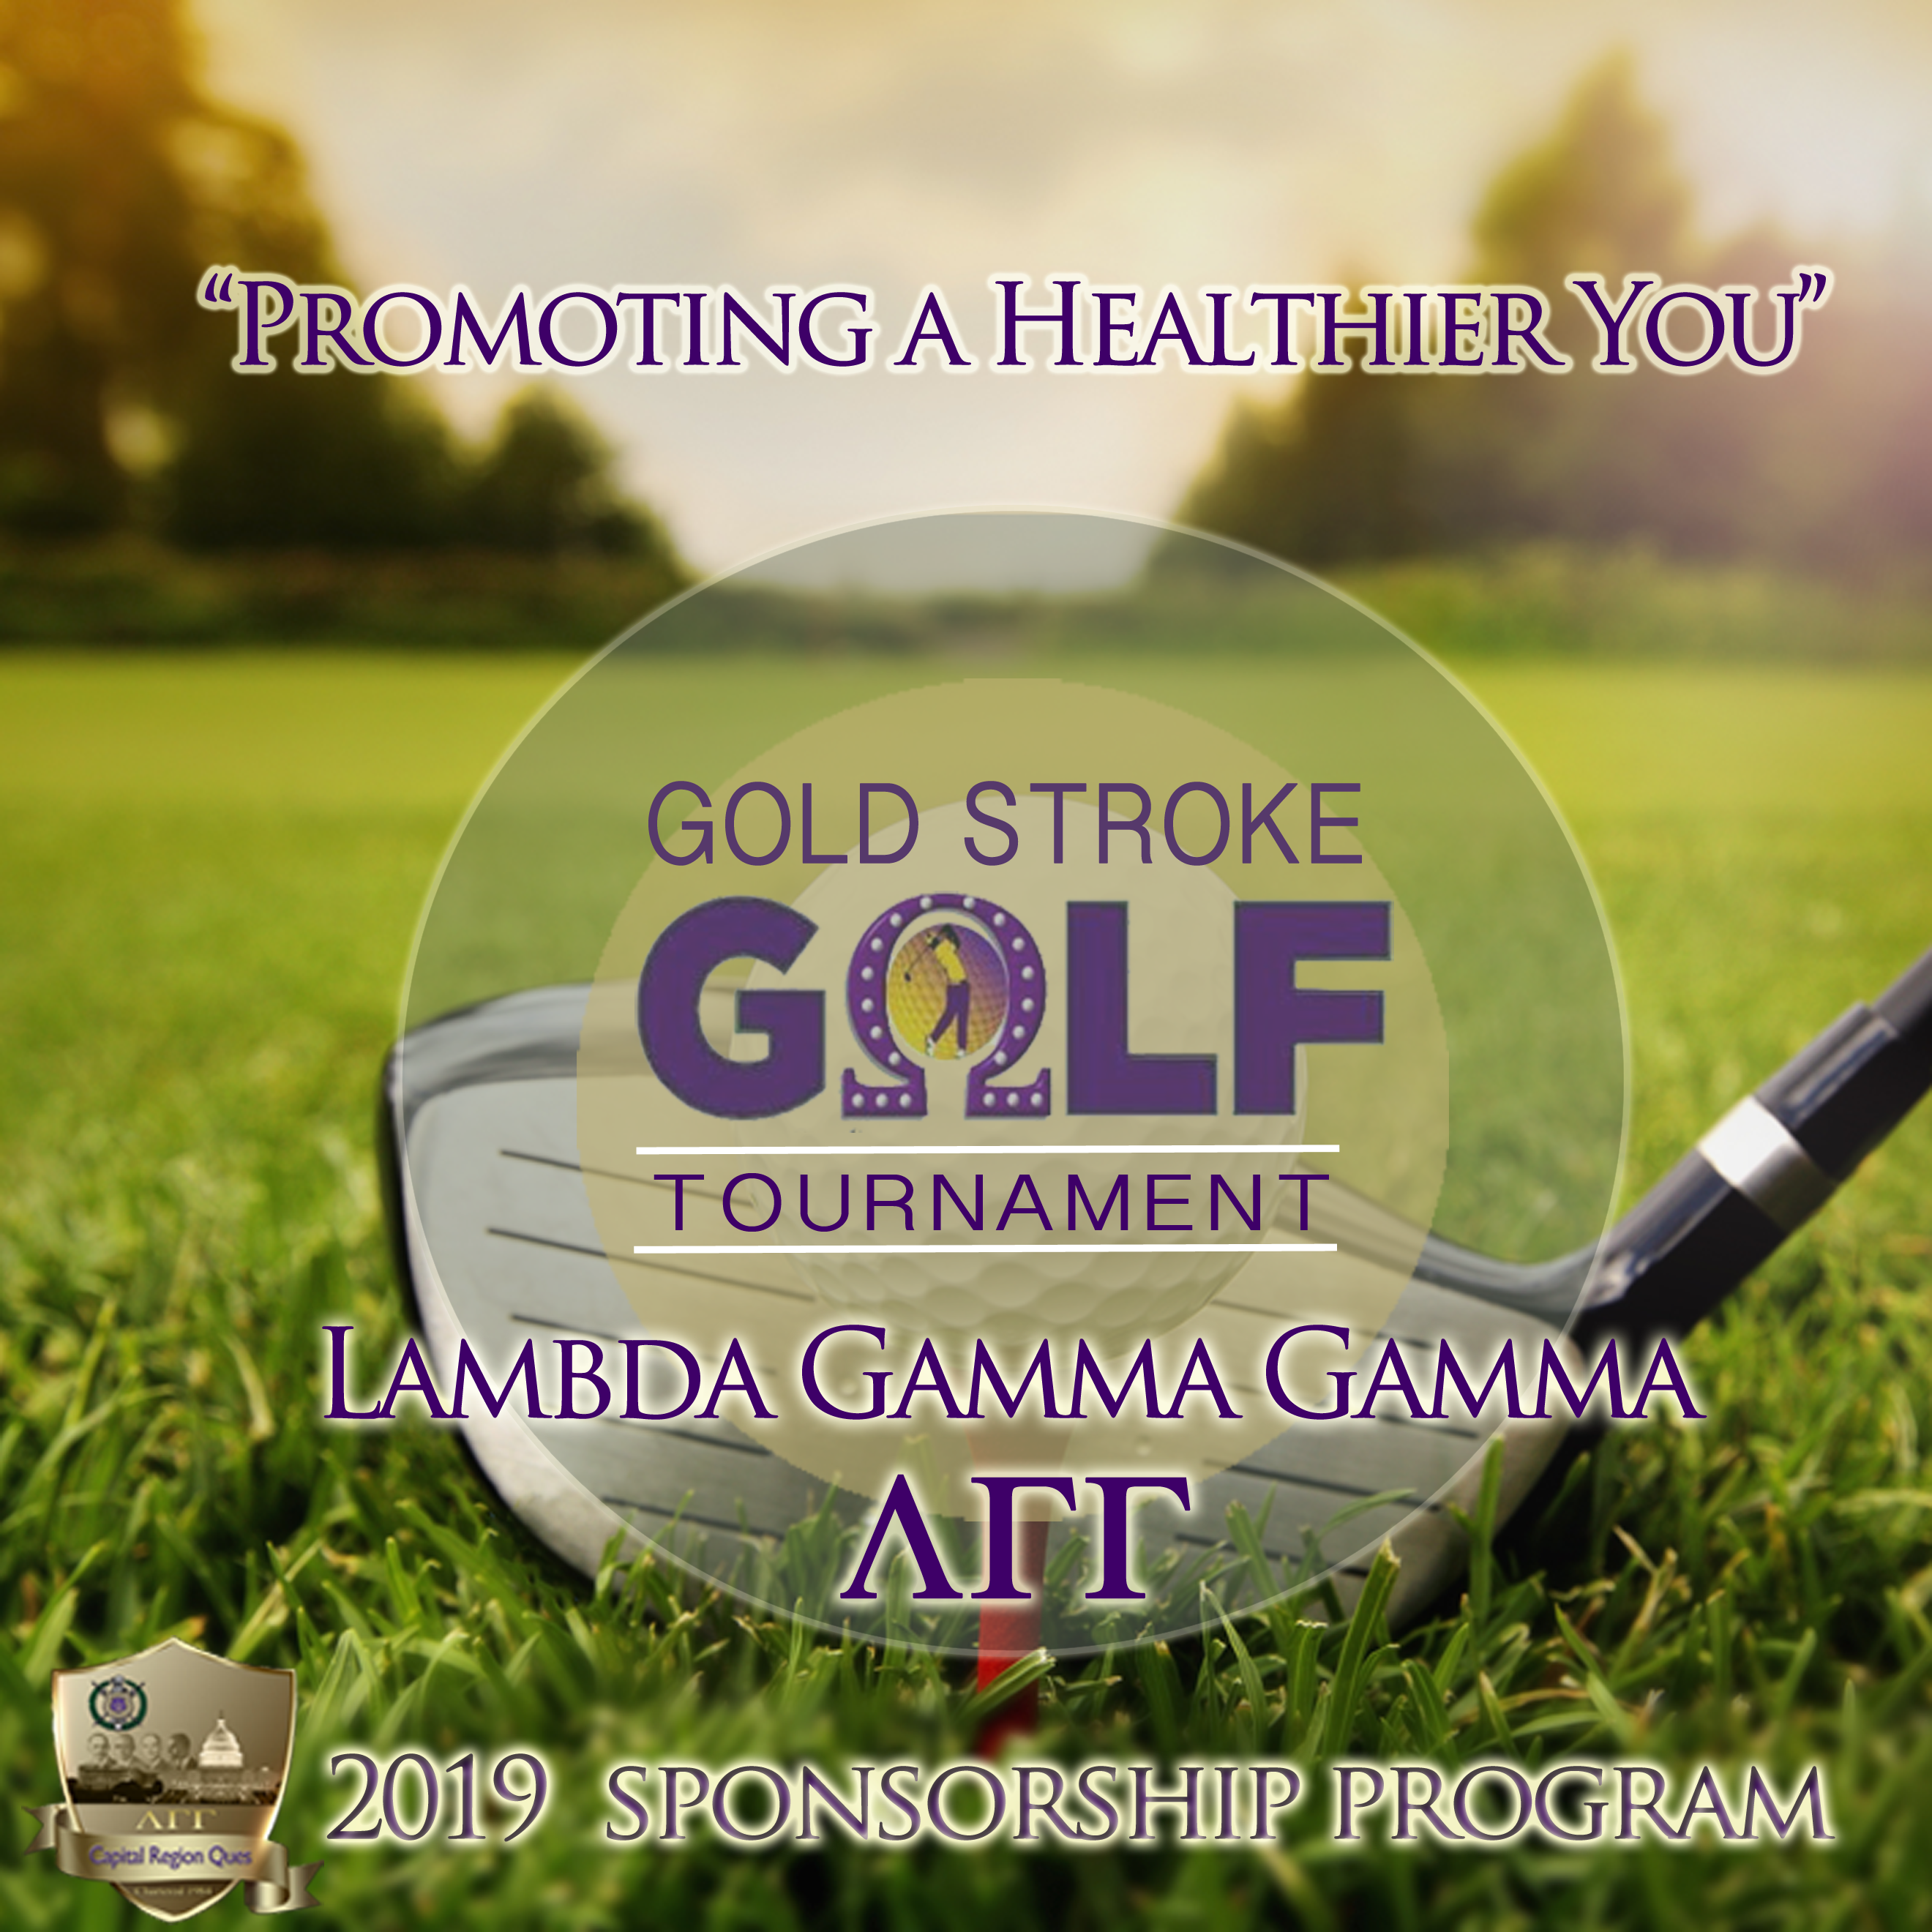 Gold Stroke Golf Sponsorship